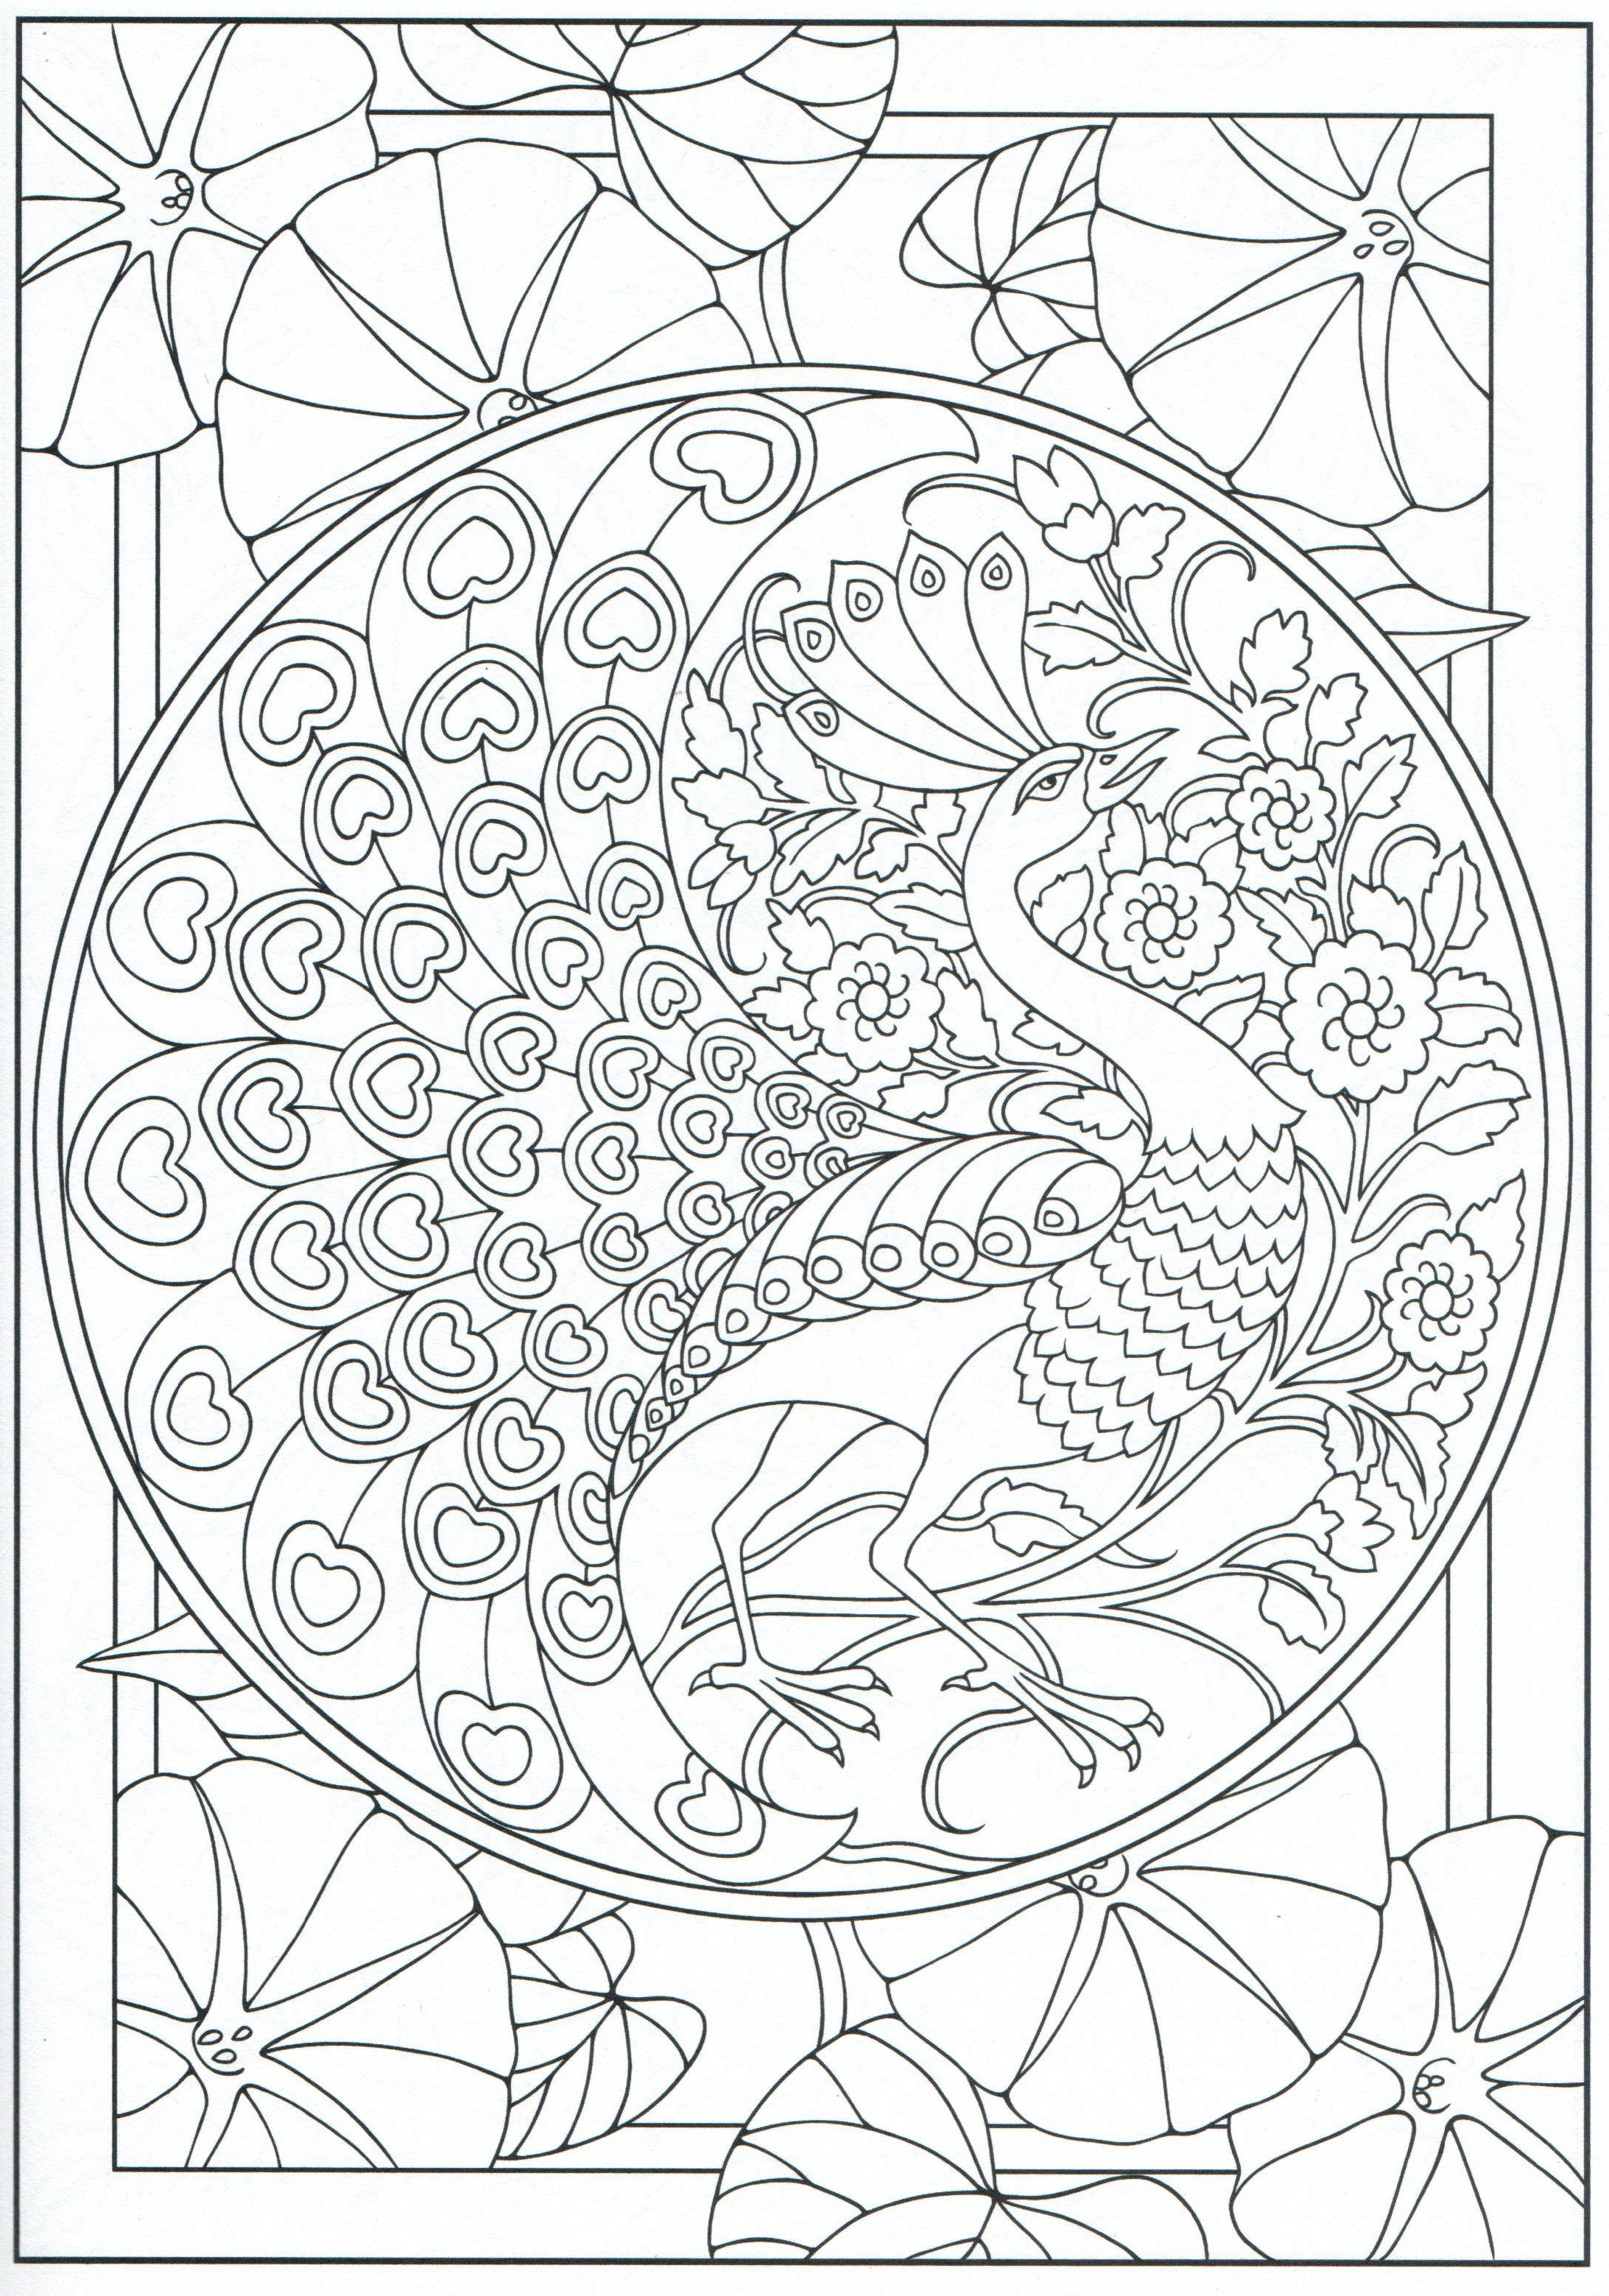 Free coloring pages of peacock feathers coloring everyday printable - Peacock Coloring Page For Adults 11 31